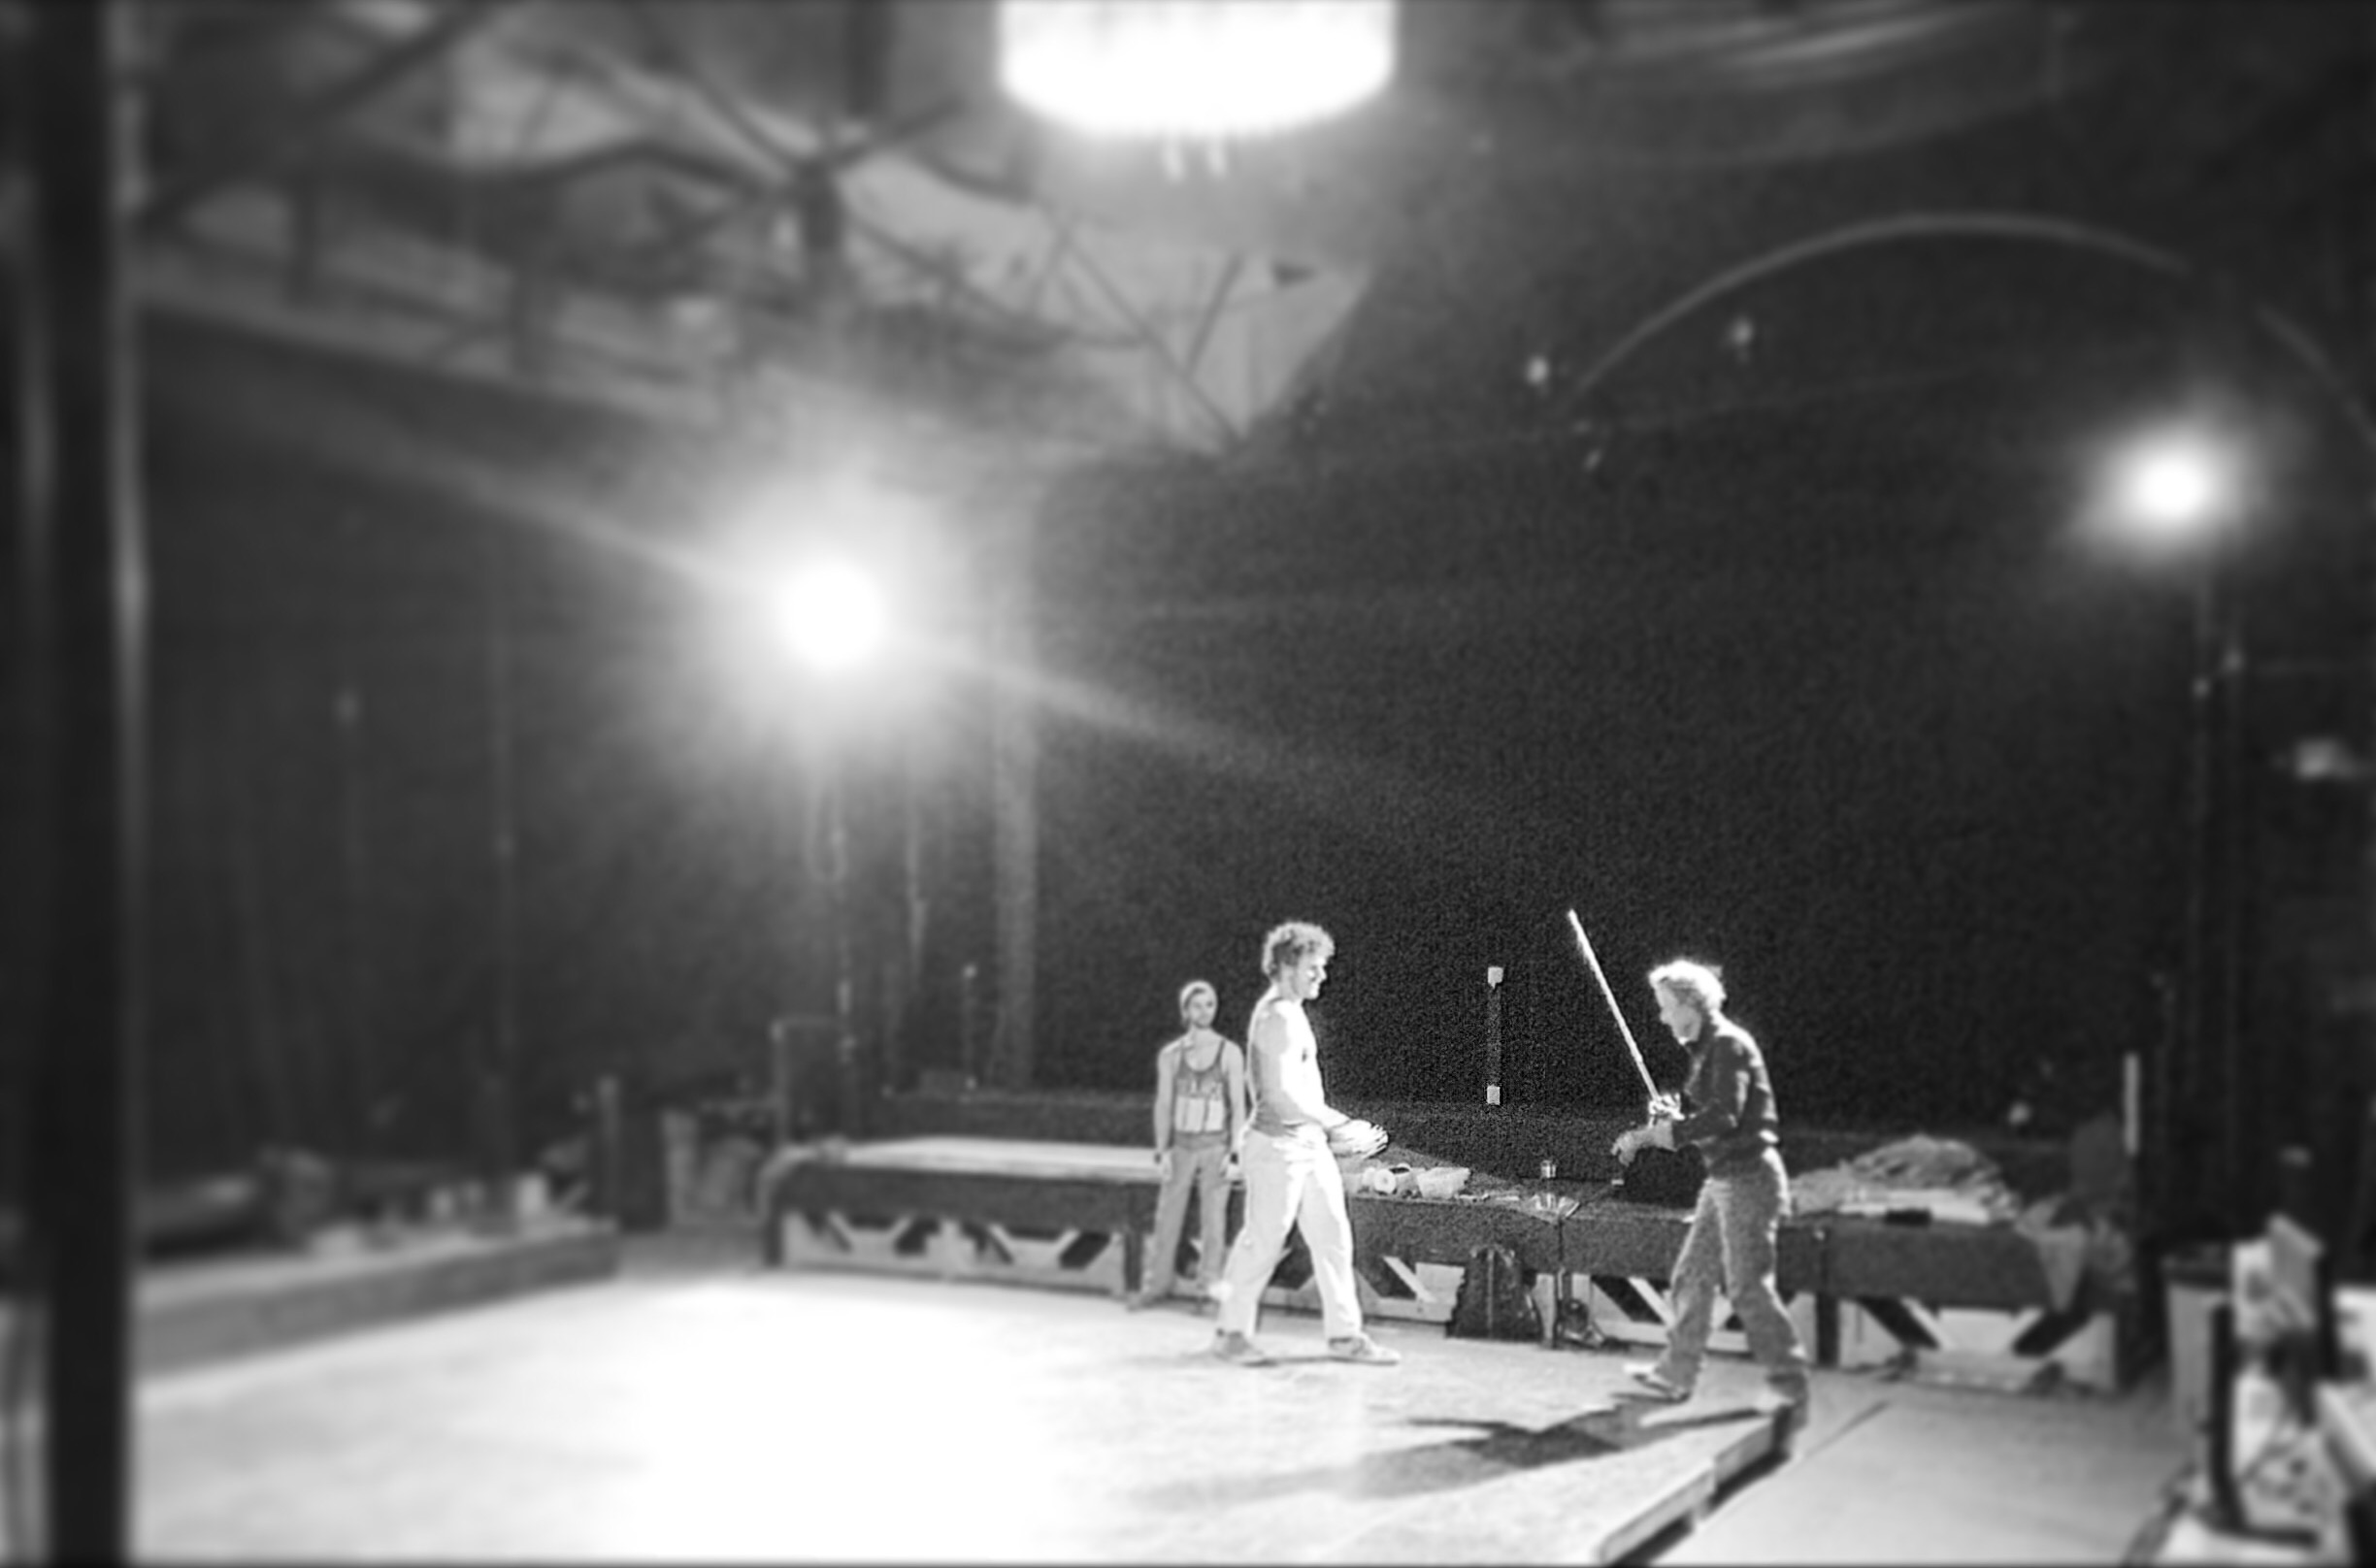 Ian Rose (far right) works with J. Connor Hammond and Ken Sandberg on the Musketeer stage